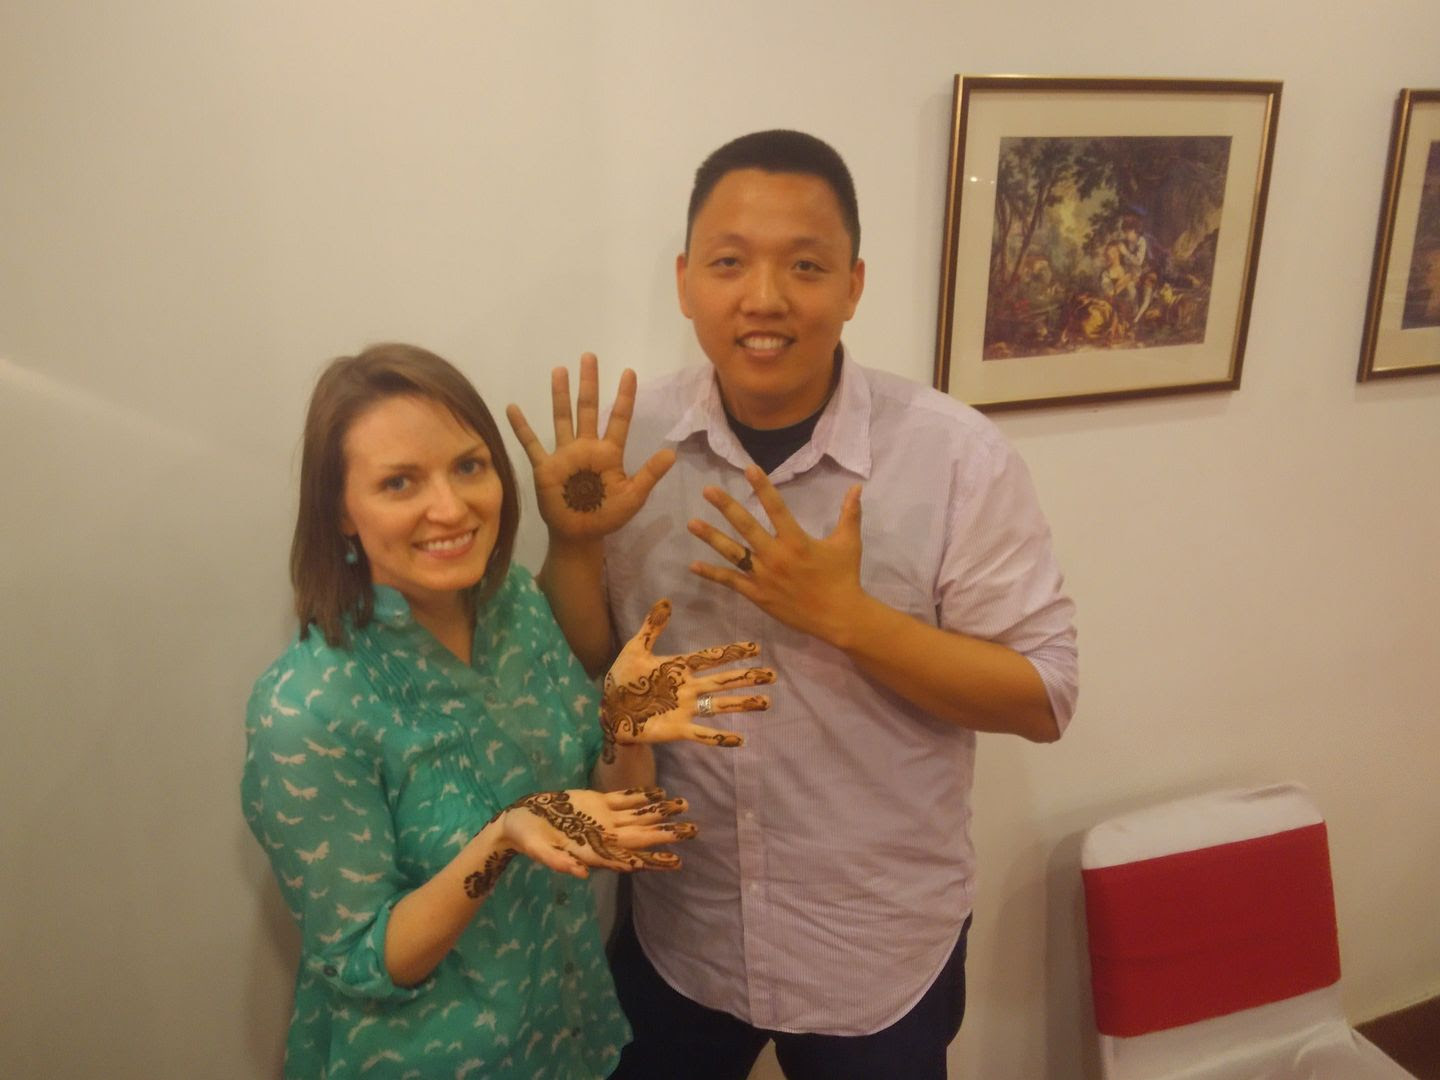 Michelle and Michael With Henna (Mehndi) for Wedding in Delhi photo IMG_20150513_174026_zpsvqrnnolk.jpg